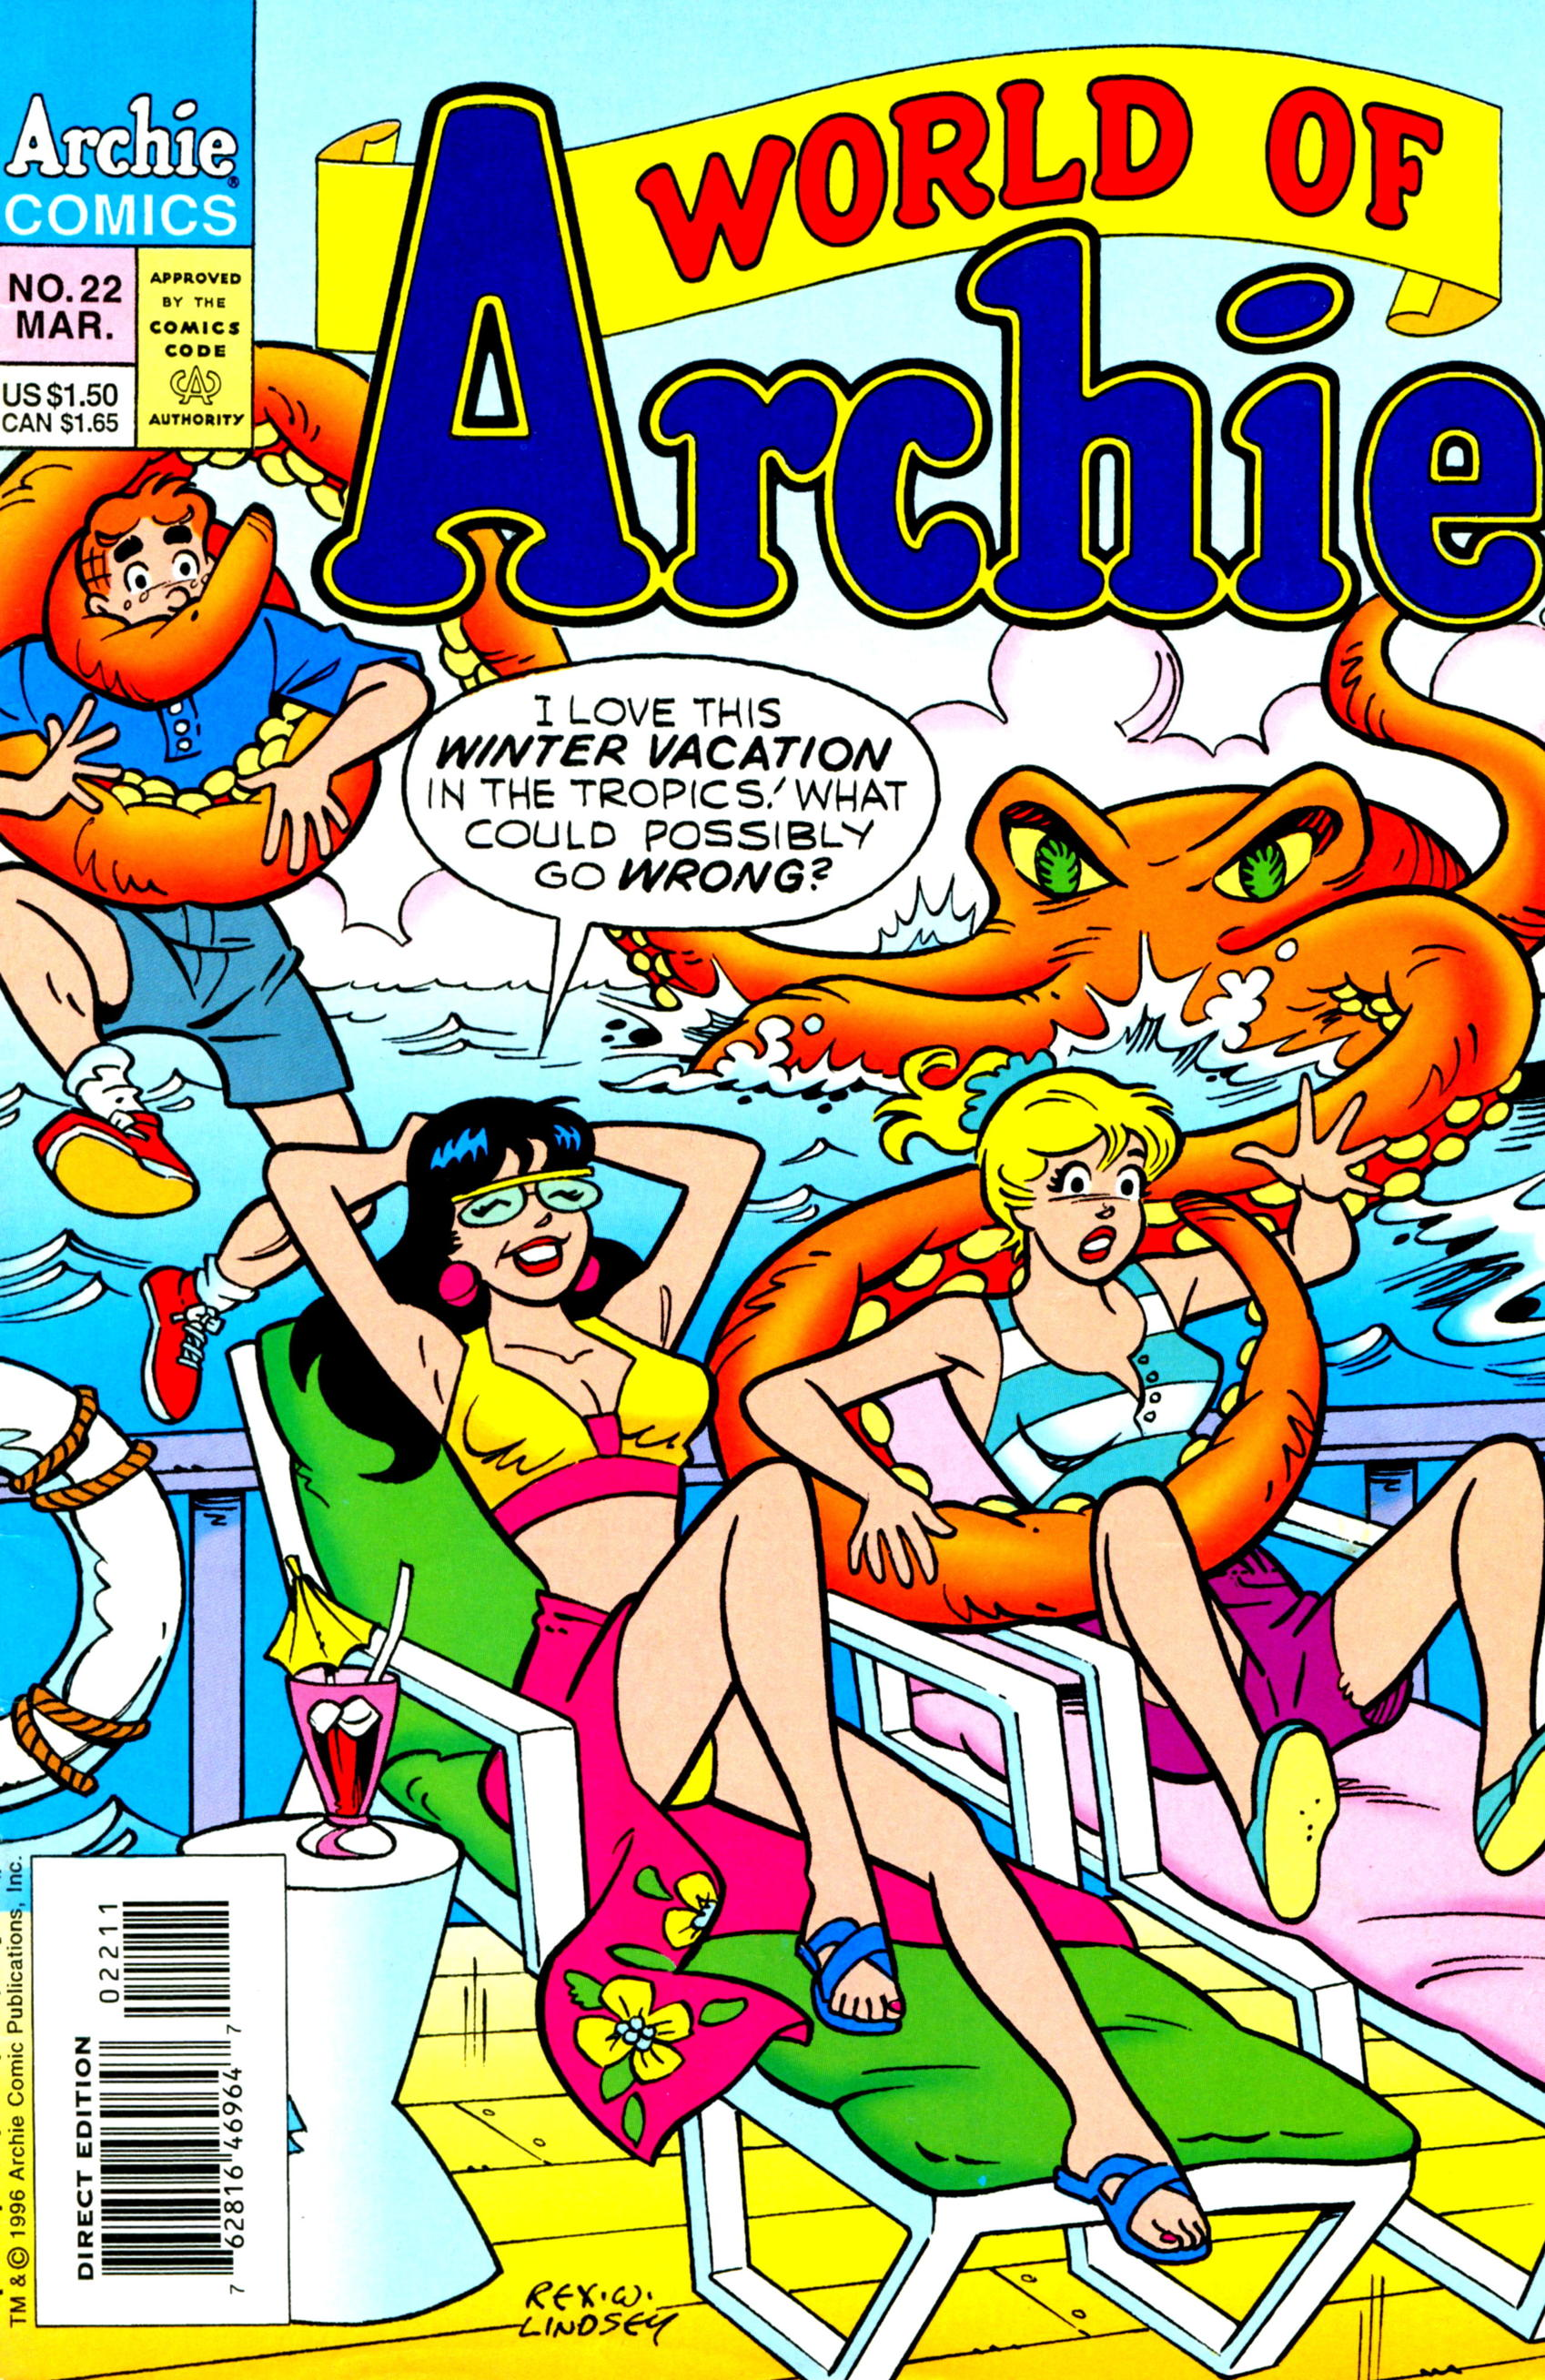 Read online World of Archie comic -  Issue #22 - 1